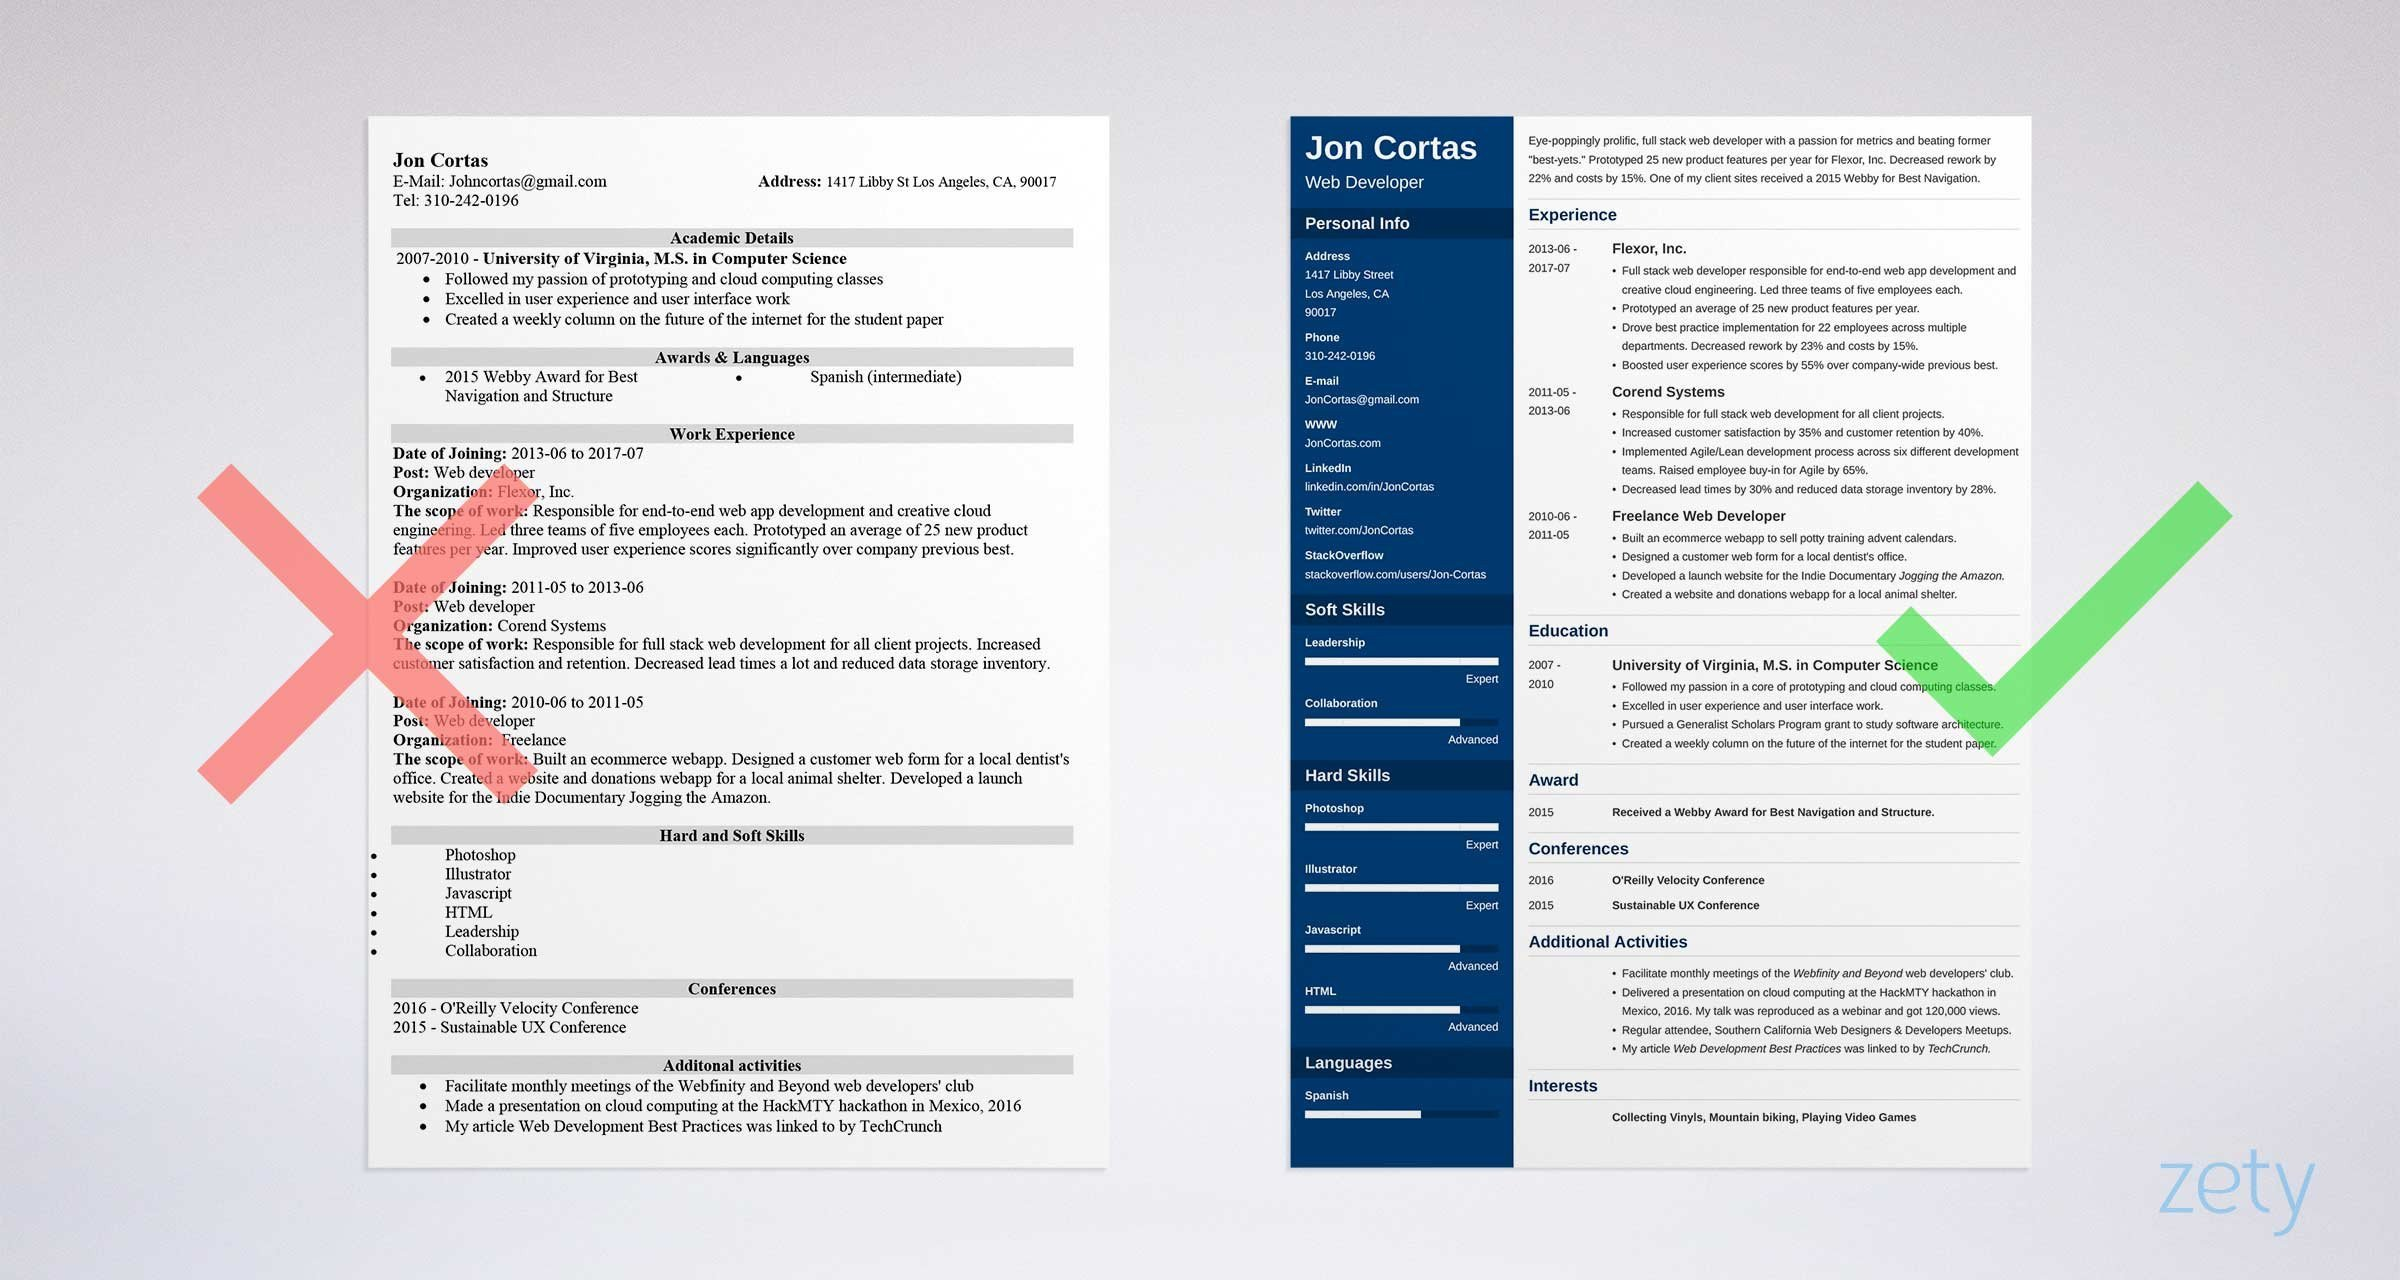 Resume Template Word Free Download Free Resume Templates for Word 15 Cv Resume formats to